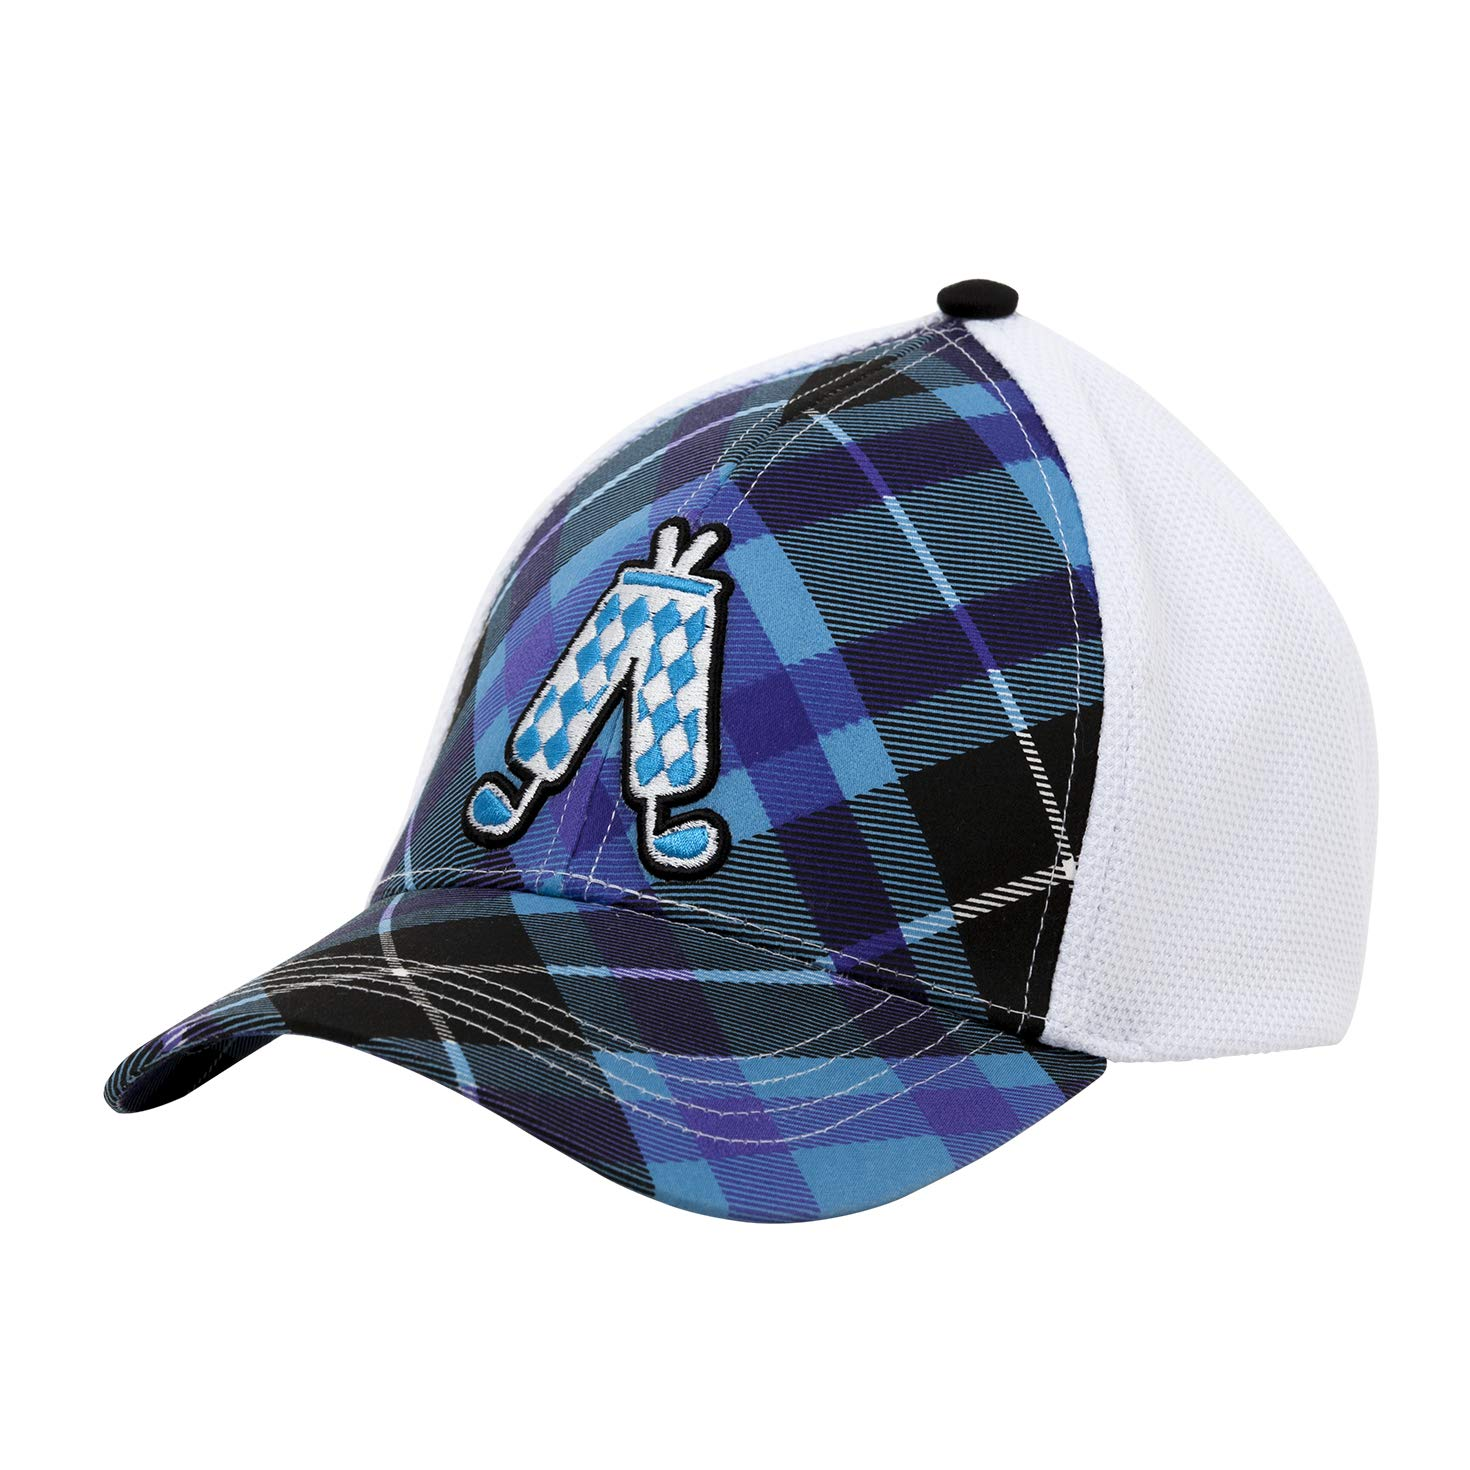 22f17b75 Royal & Awesome Bright Funky Colourful Unisex Golf Caps Hats